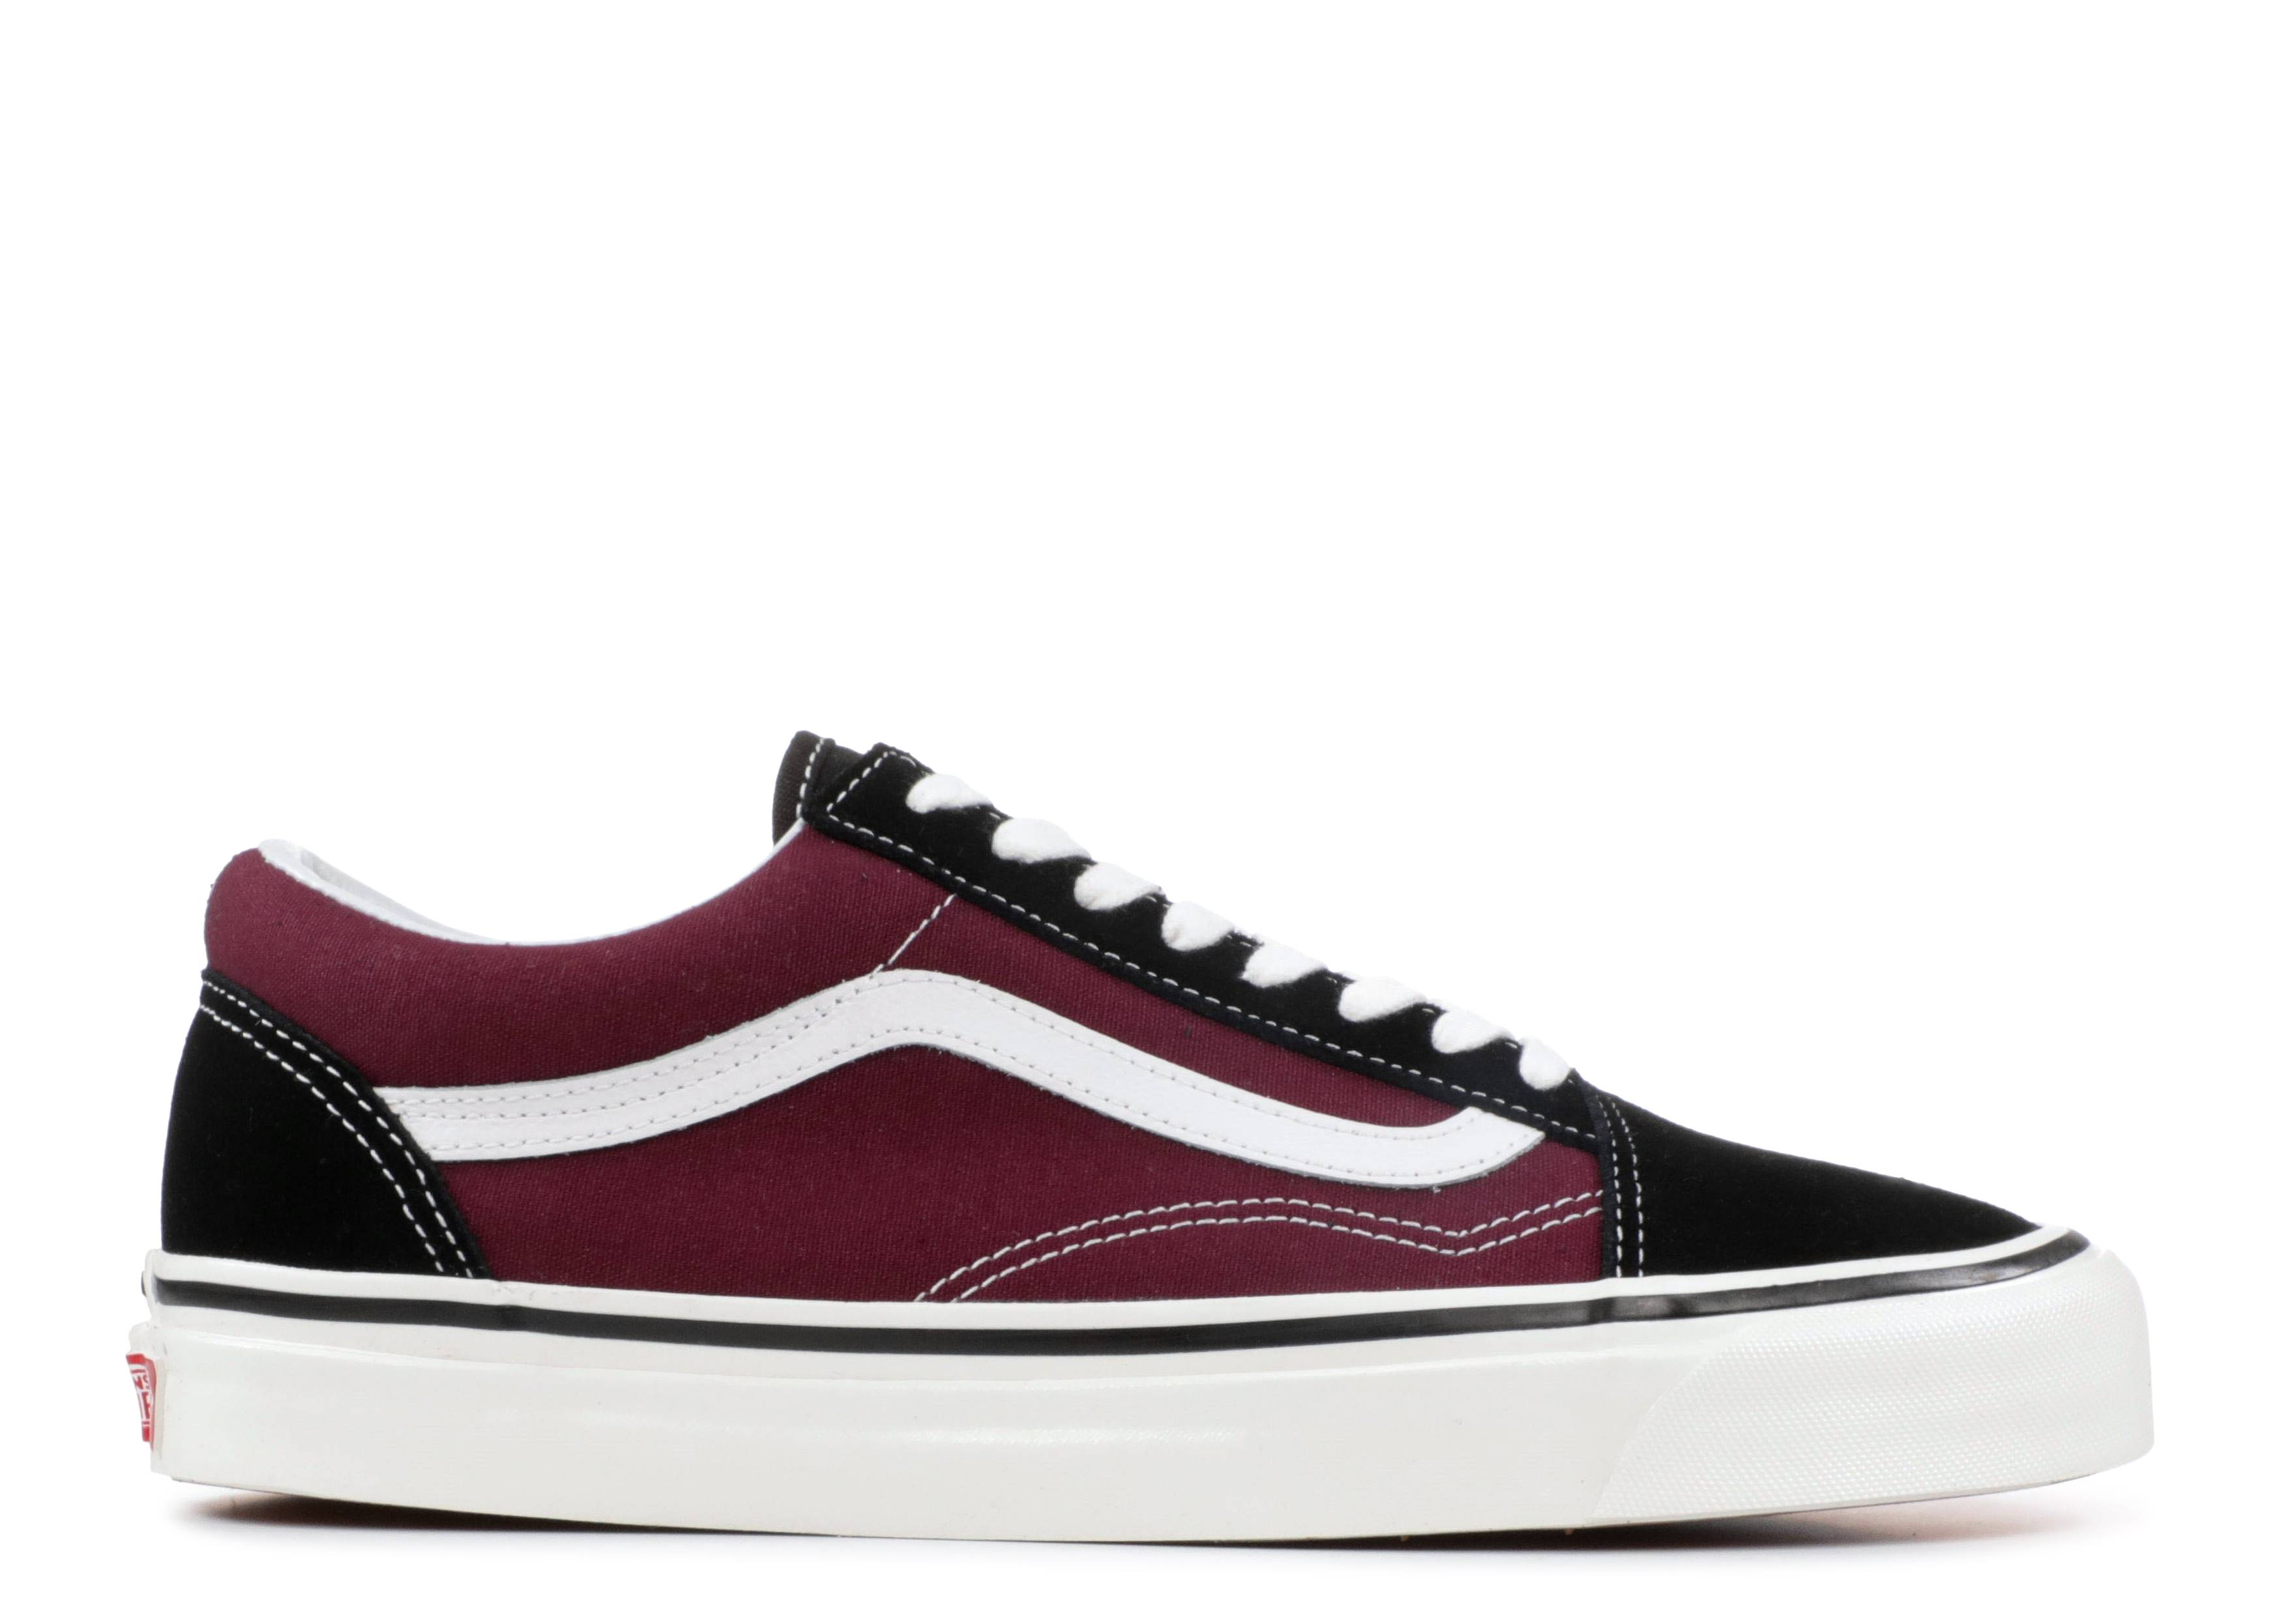 68de9e8195 Old Skool 36 DX - Vans - VN0A38G2R1U - black og burgundy